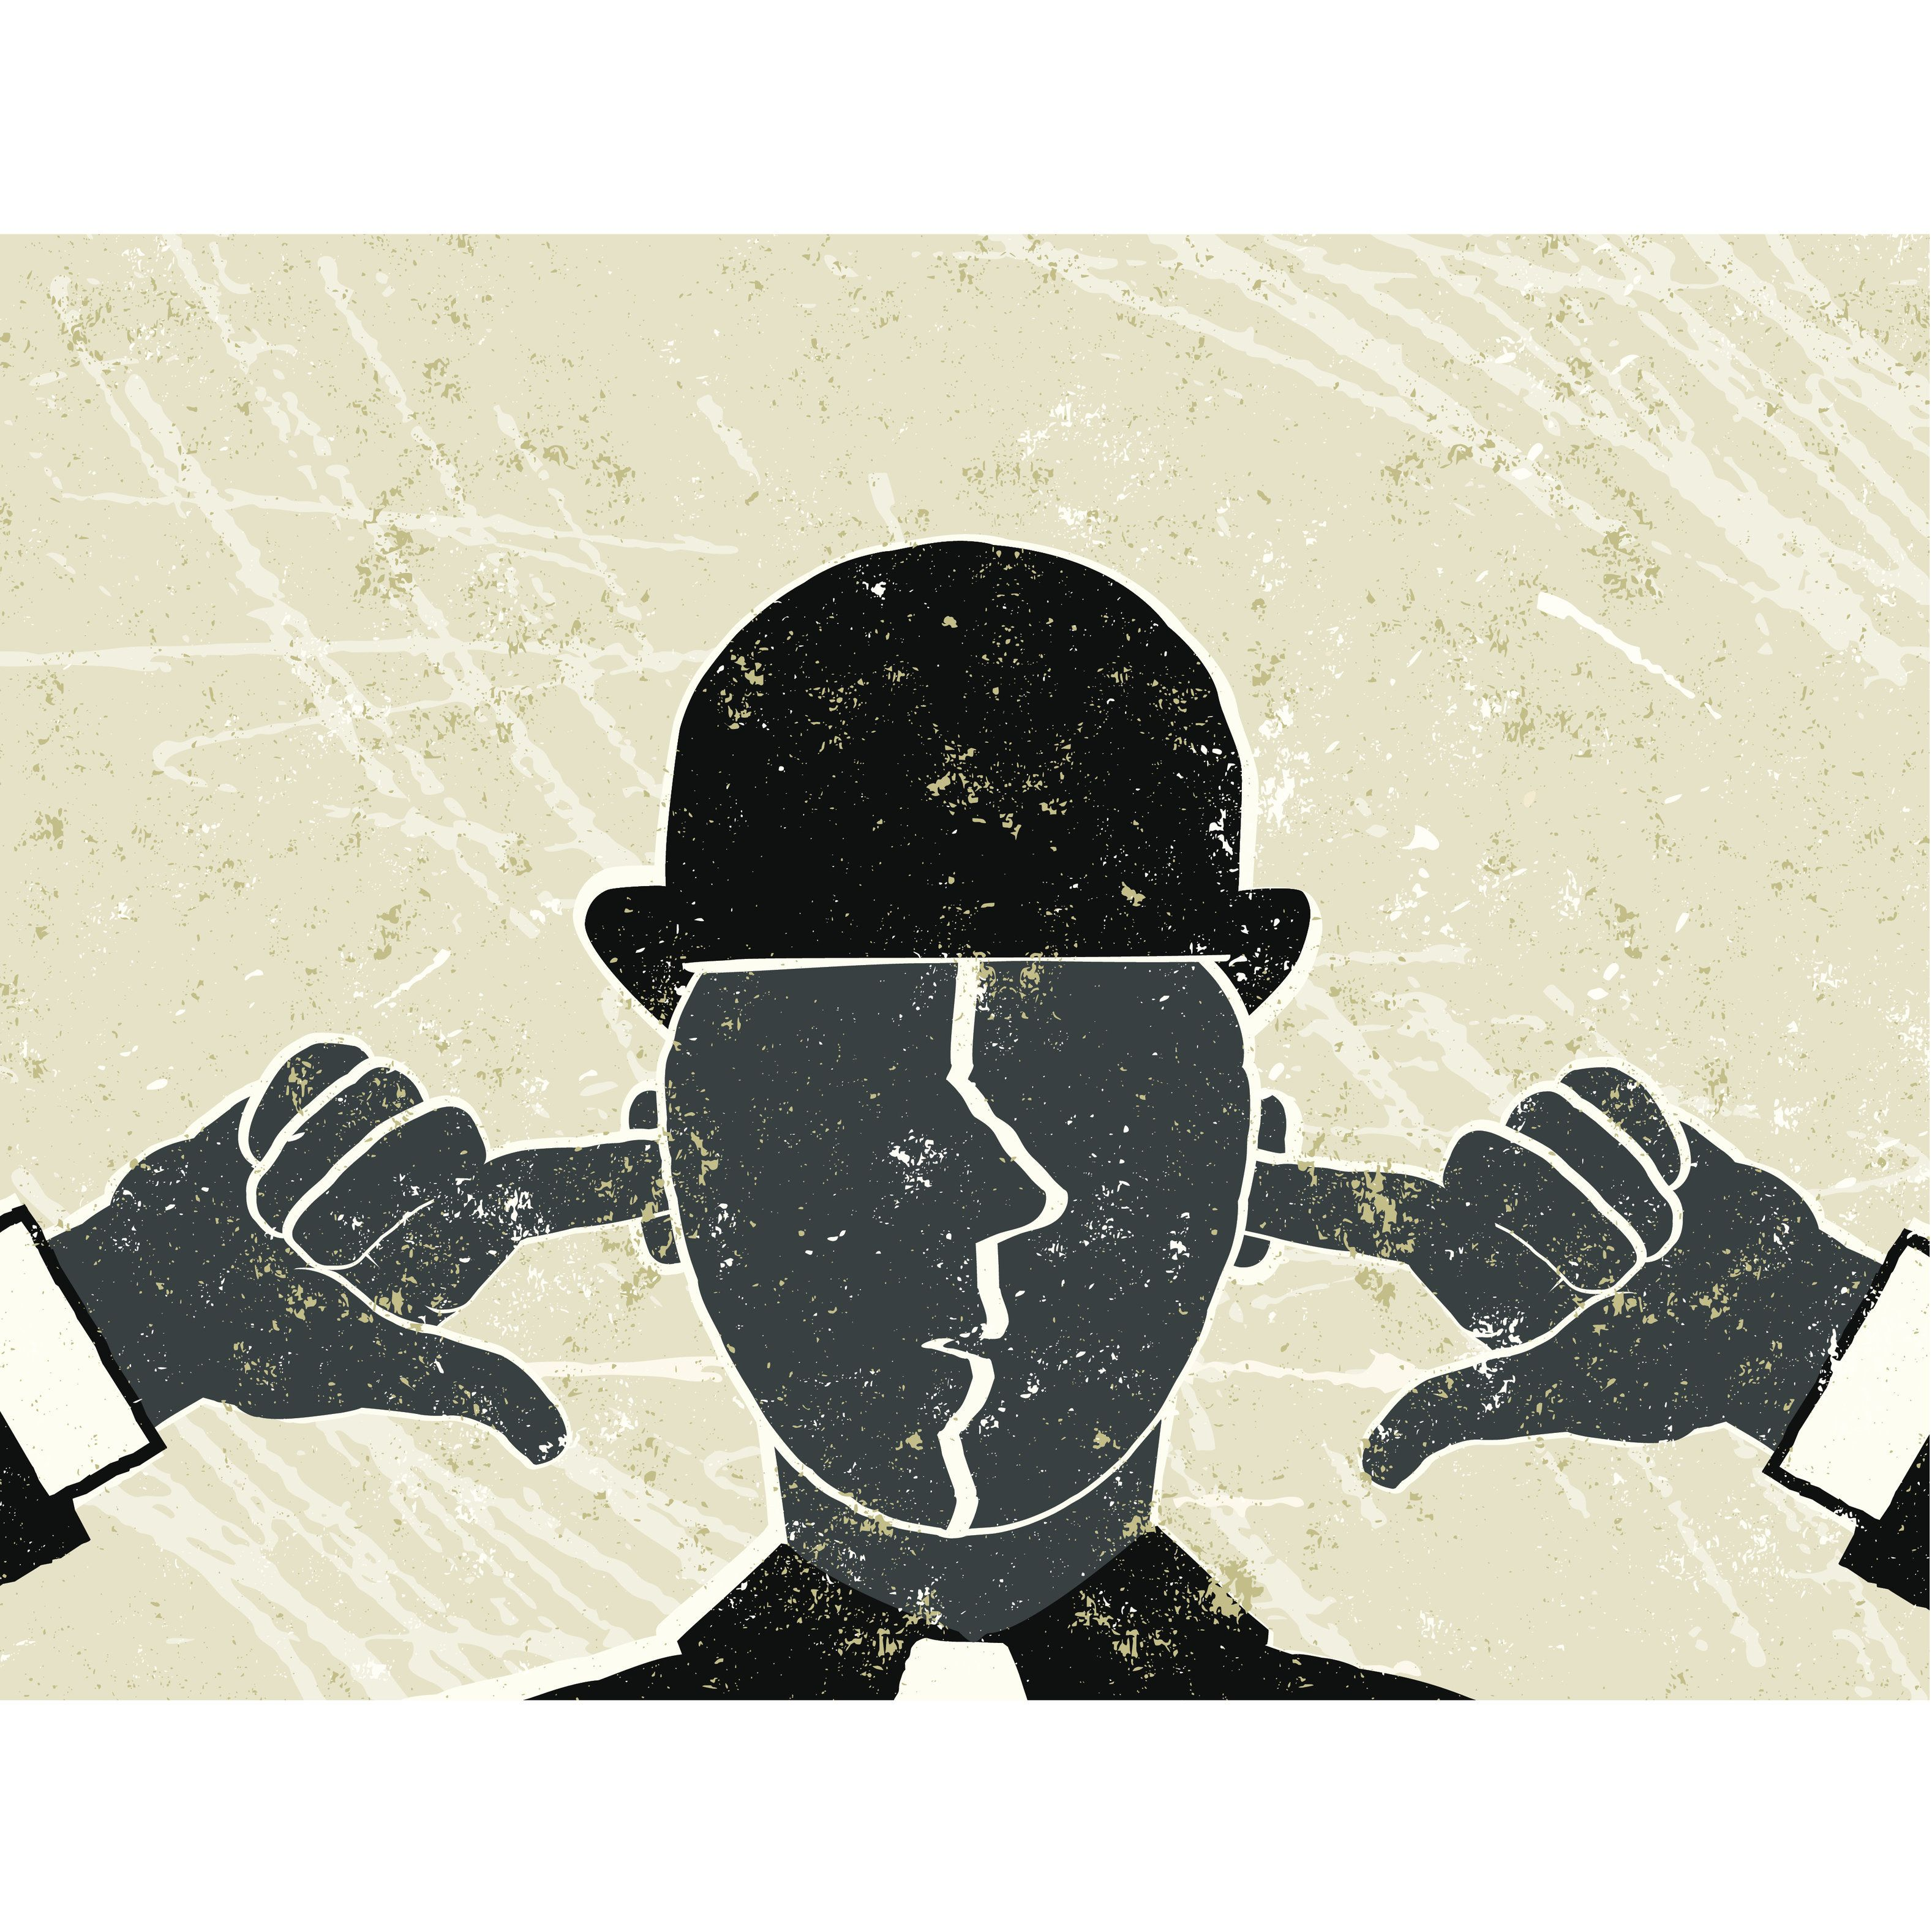 I Can't Hear You!  A stylized vector cartoon of a businessman with his fingers in his ears reminiscent of an old screen print poster and suggesting oblivious, ignore, loneliness, censorship, mute or not listening. Man, hat, hands, paper texture, and background are on different layers for easy editing. Please note: clipping paths have been used, an eps version is included without the path.